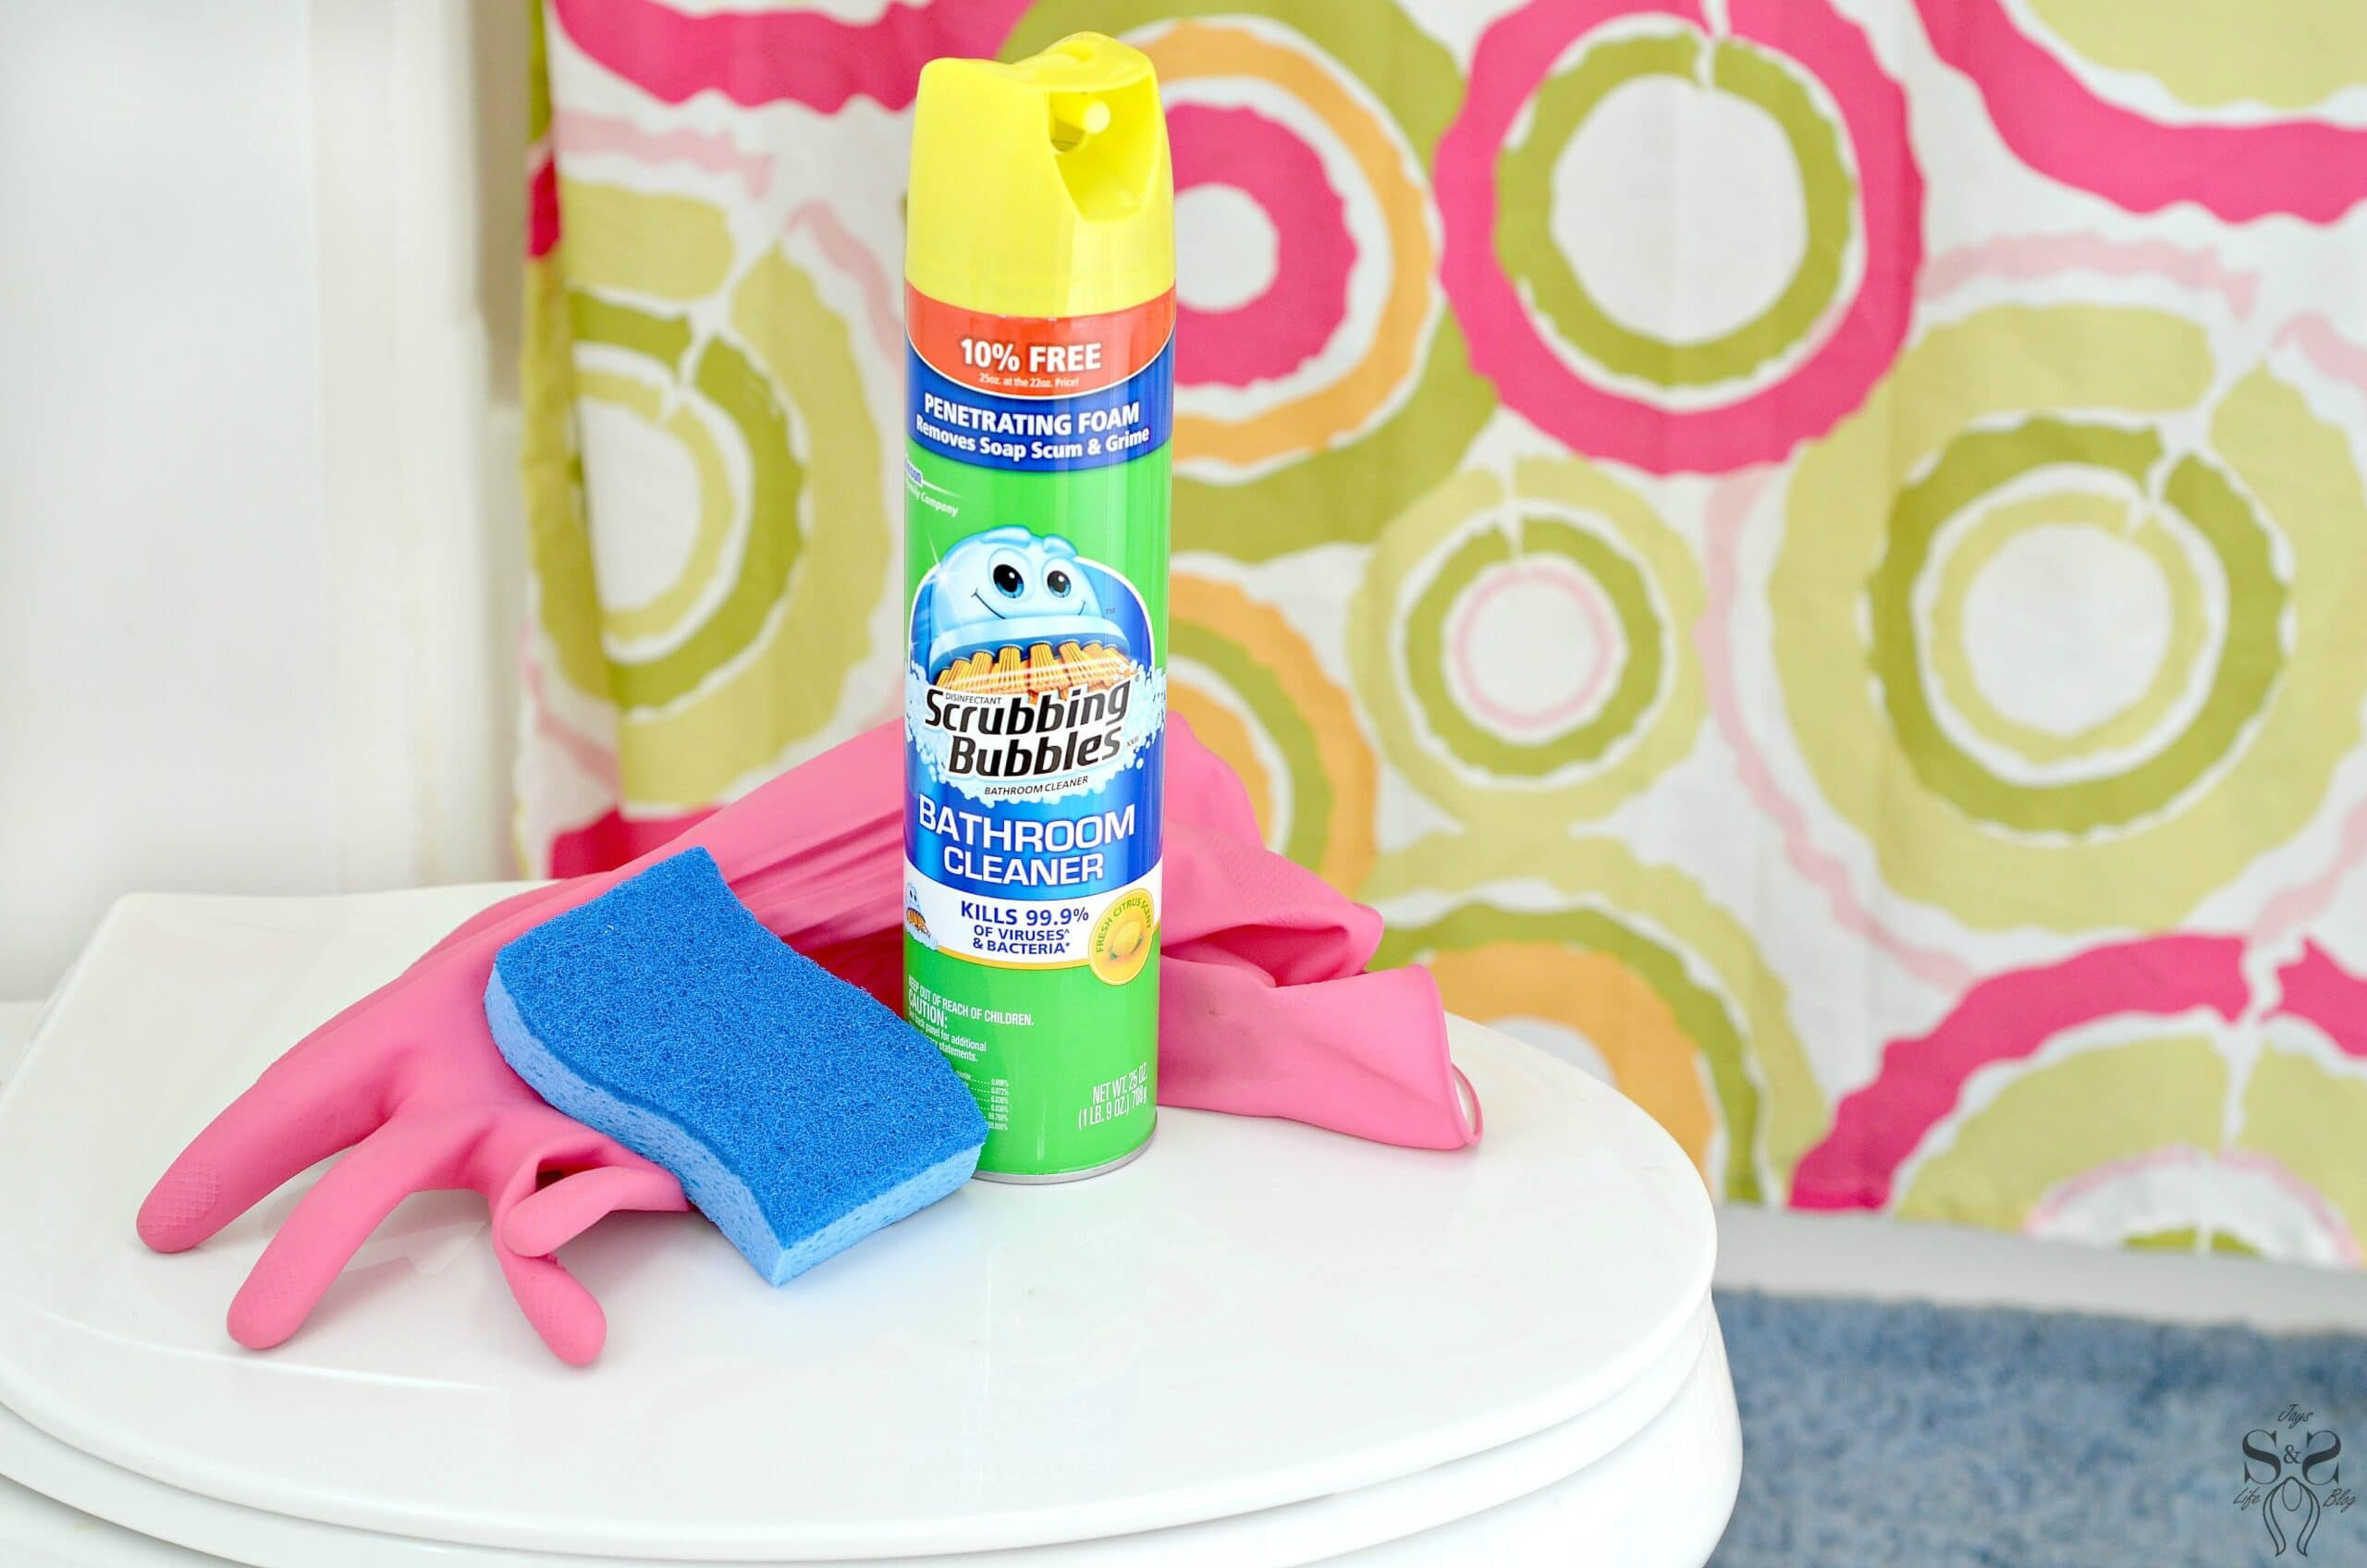 3 Simple Steps to Spring Clean Your Bathroom or Family Bathroom!